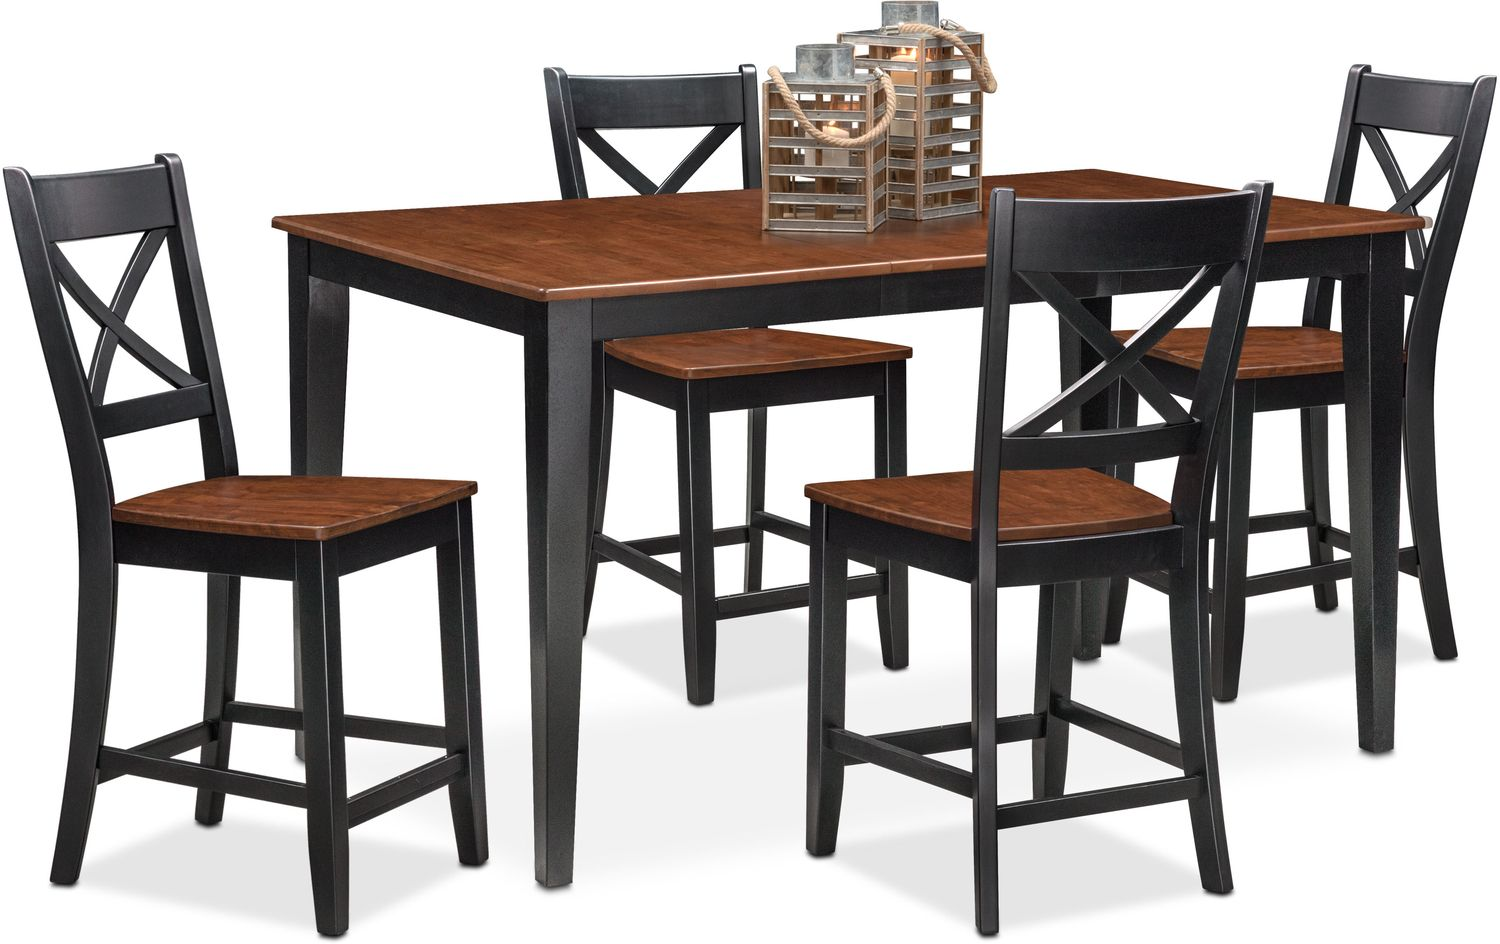 Nantucket Counter Height Table and 4 Side Chairs Black  : 501413 from www.americansignaturefurniture.com size 1500 x 944 jpeg 151kB